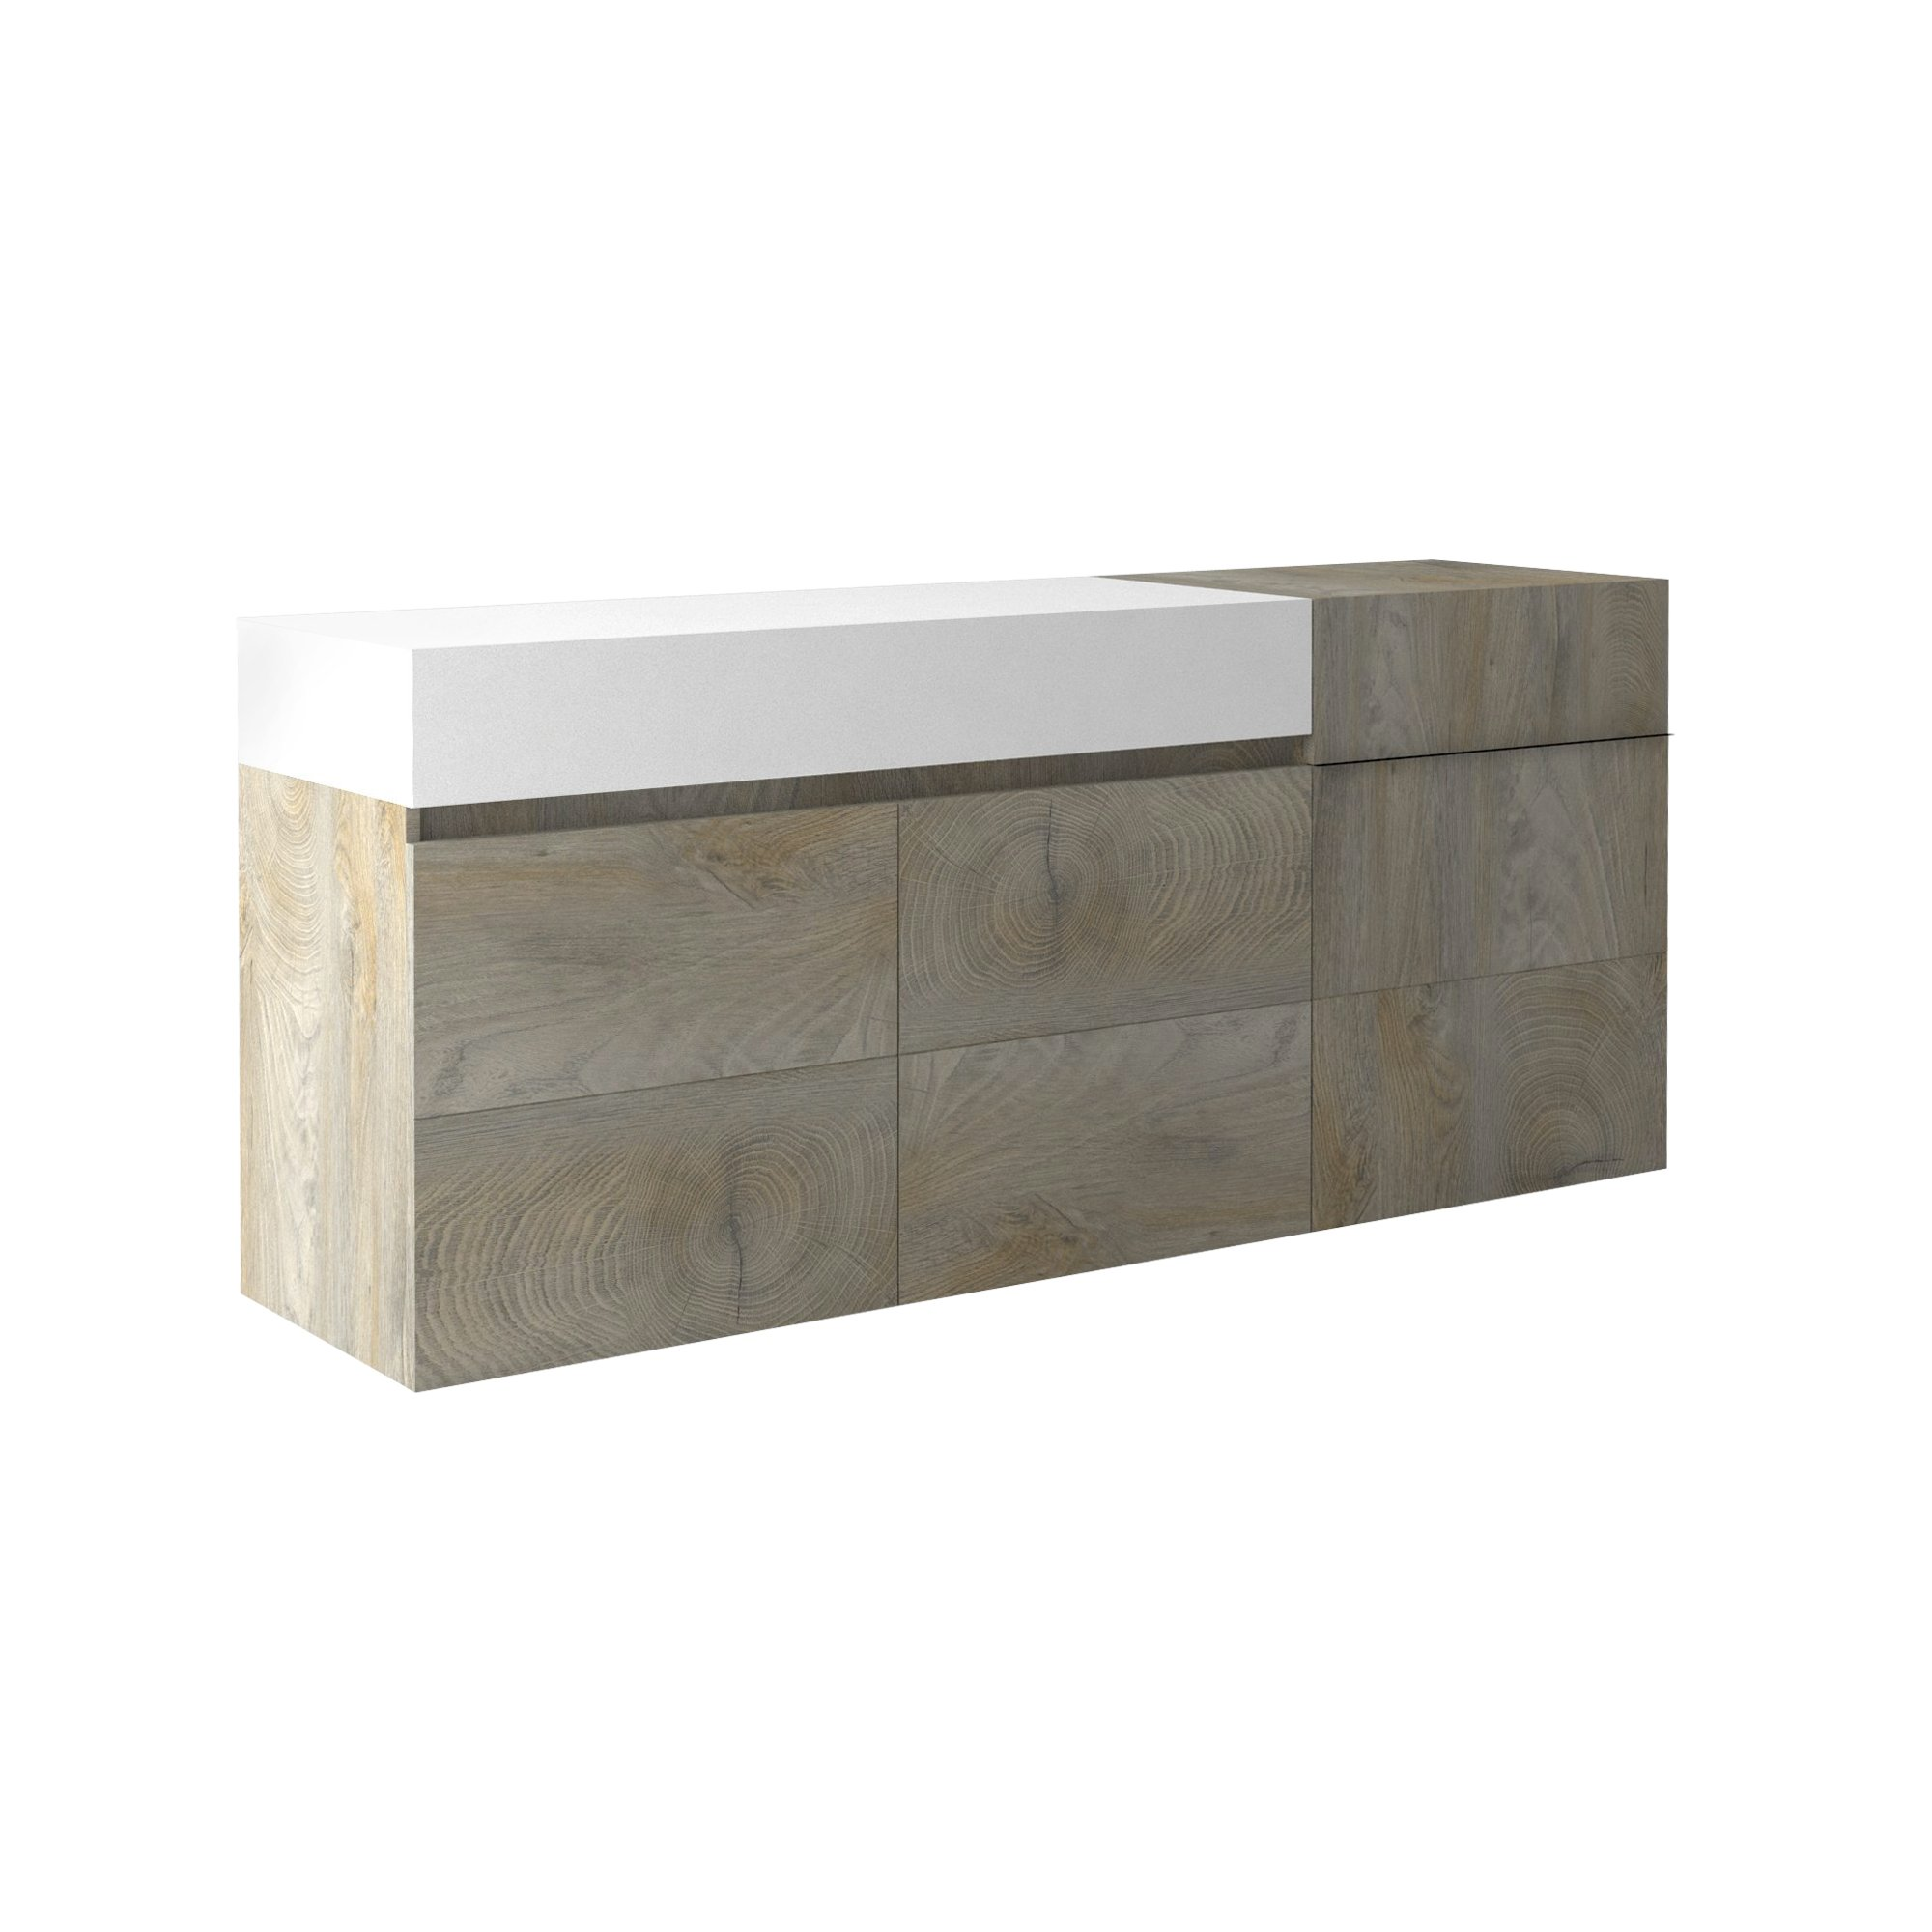 Muller Small Sideboard In Distressed Effect And White With LED_2